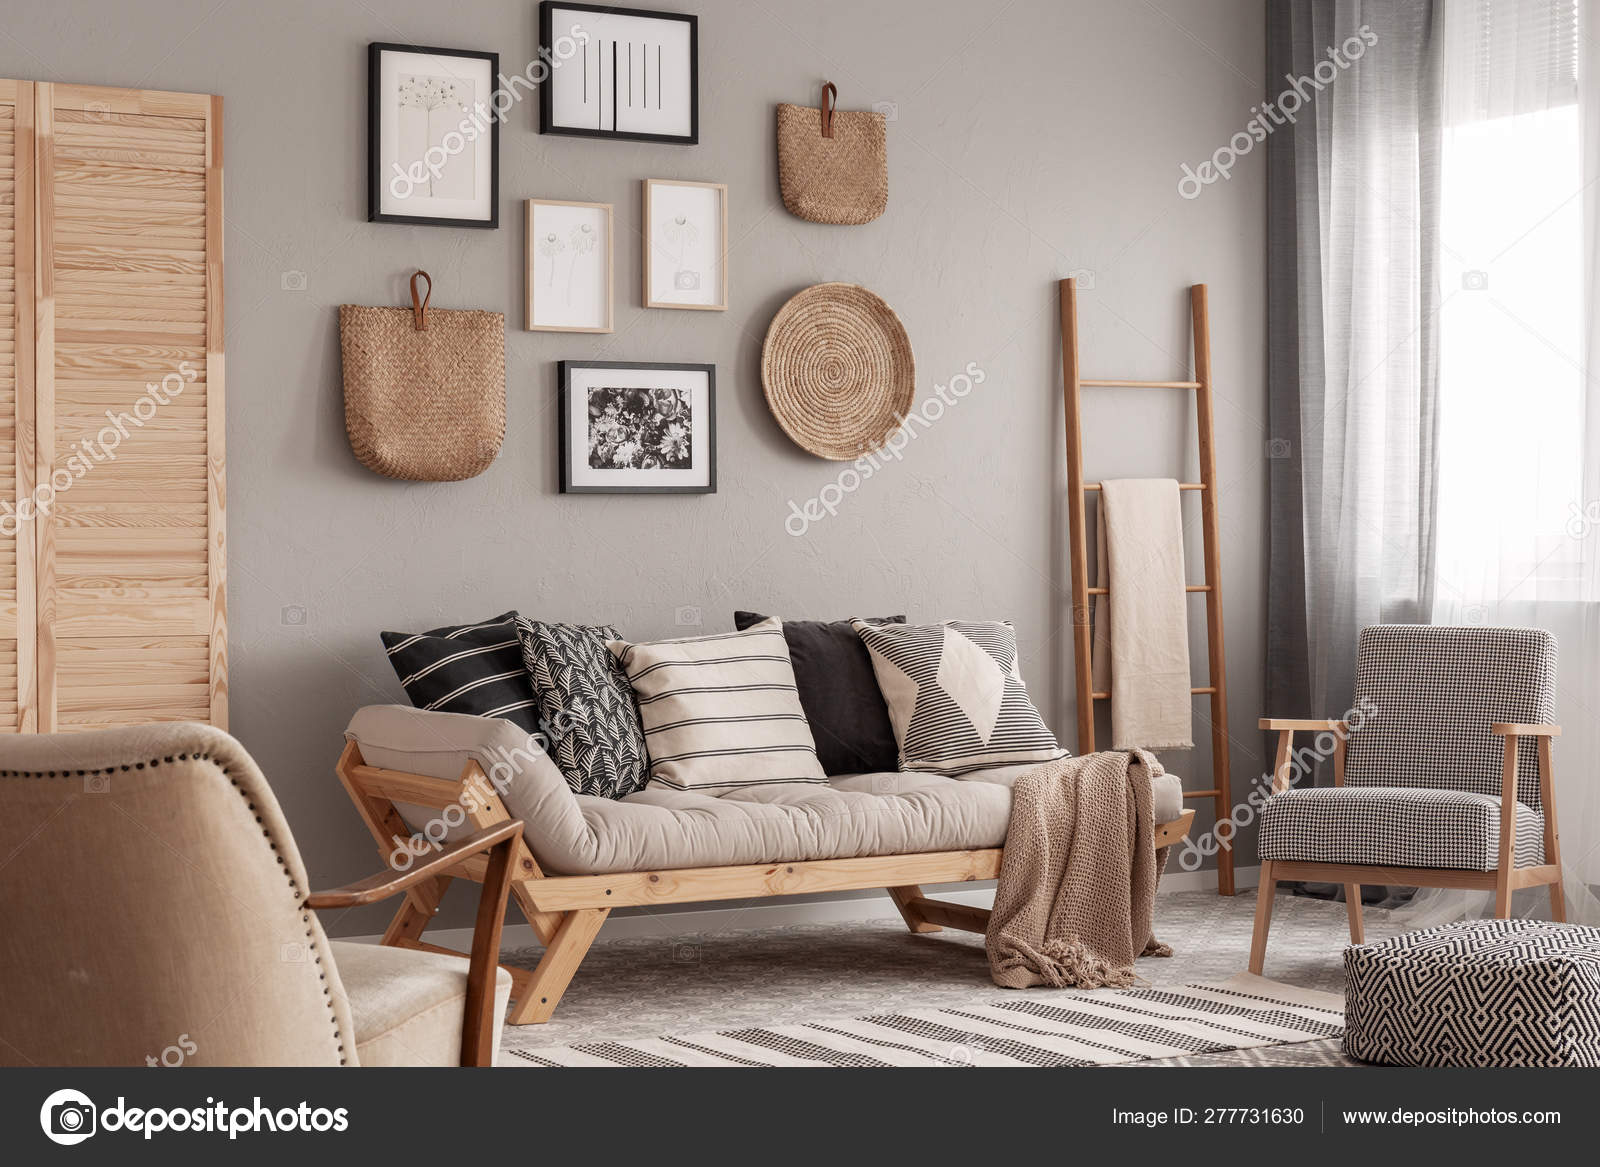 Trendy vintage armchair next to chic scandinavian sofa with ...